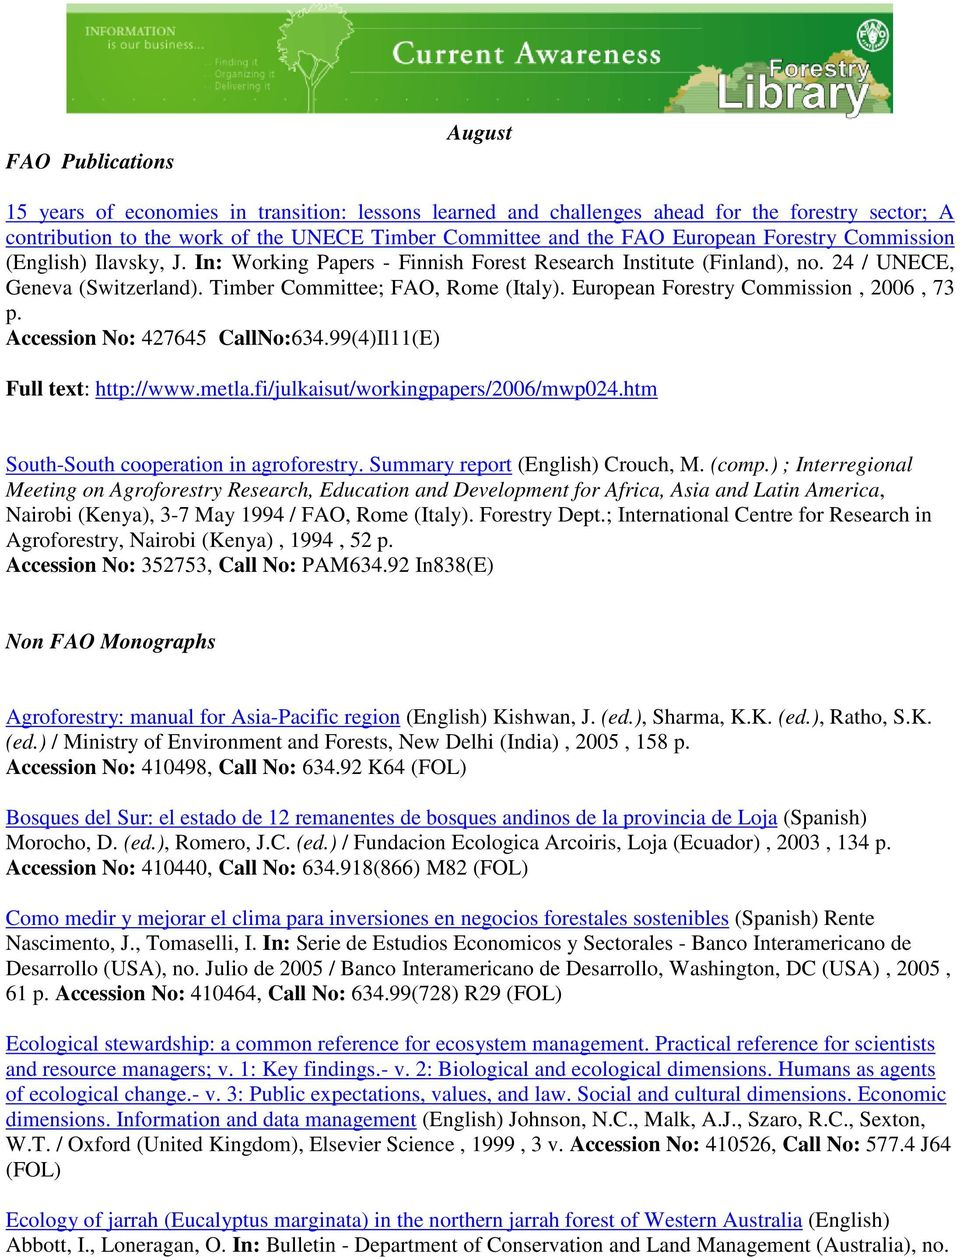 European Forestry Commission, 2006, 73 p. Accession No: 427645 CallNo:634.99(4)Il11(E) Full text: http://www.metla.fi/julkaisut/workingpapers/2006/mwp024.htm South-South cooperation in agroforestry.